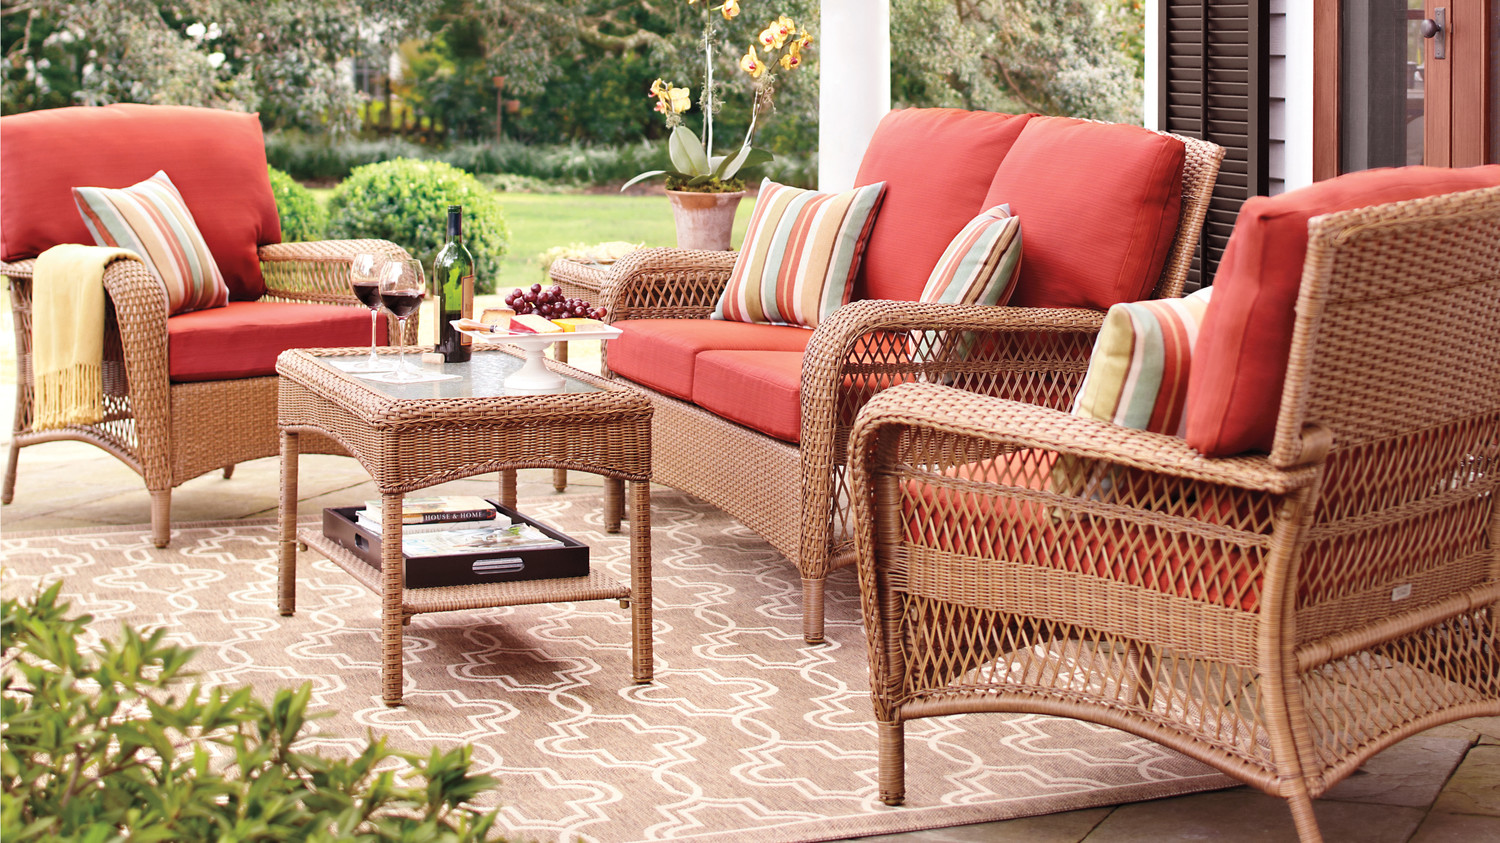 Looking To Refresh Your Patio? Here Are 3 Looks To Try. | Martha Stewart